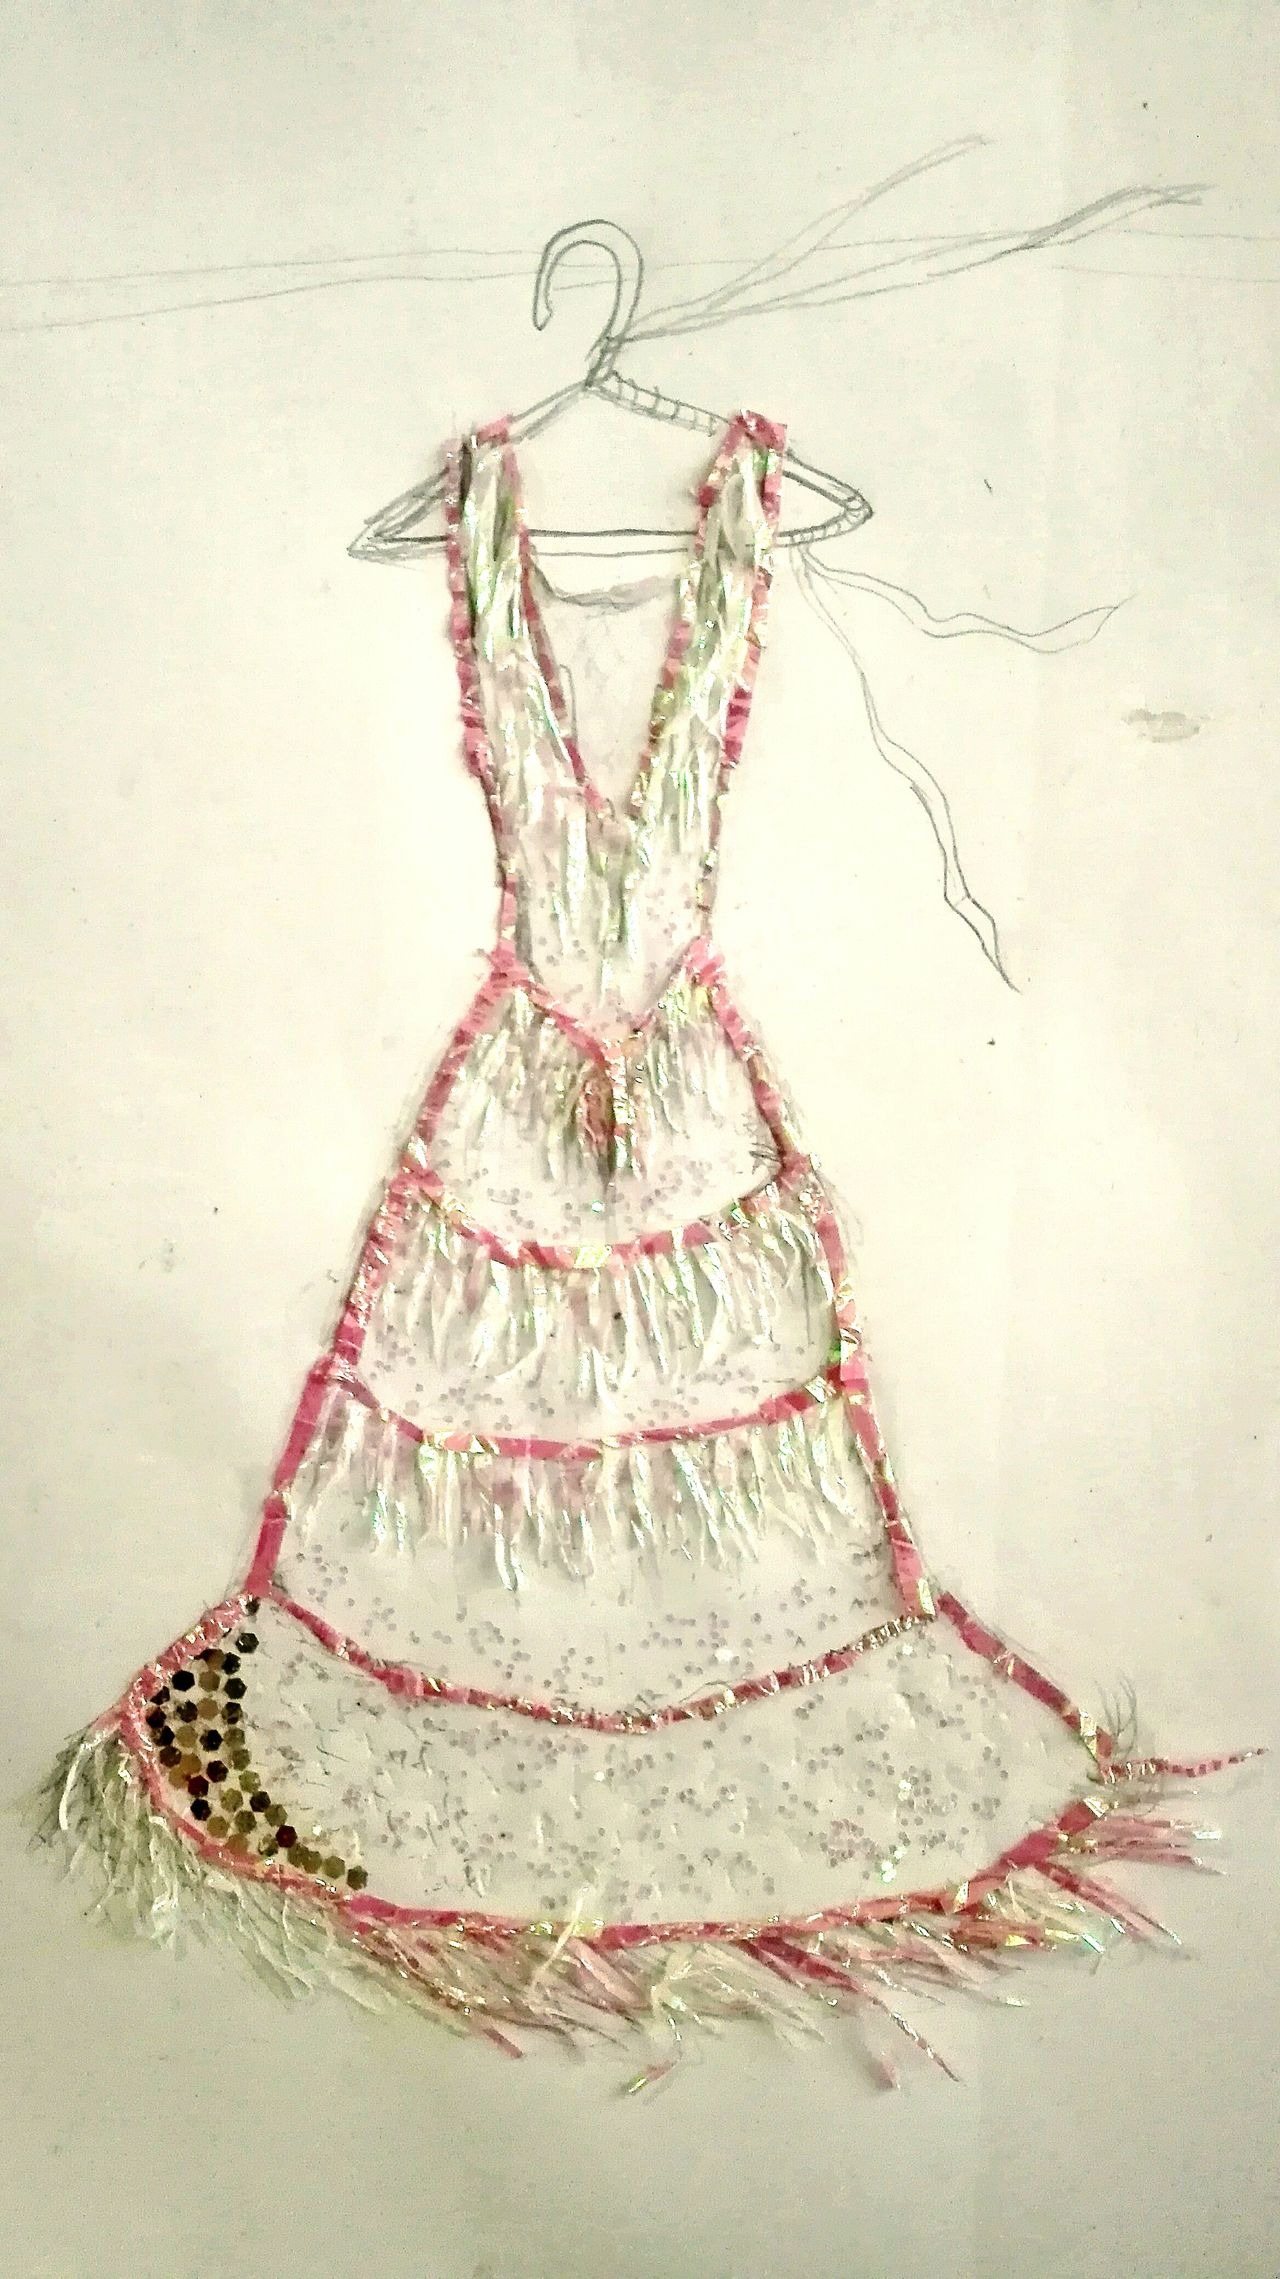 From Trash To Art Candy Wrapper Dress Pink Color Glitters No People